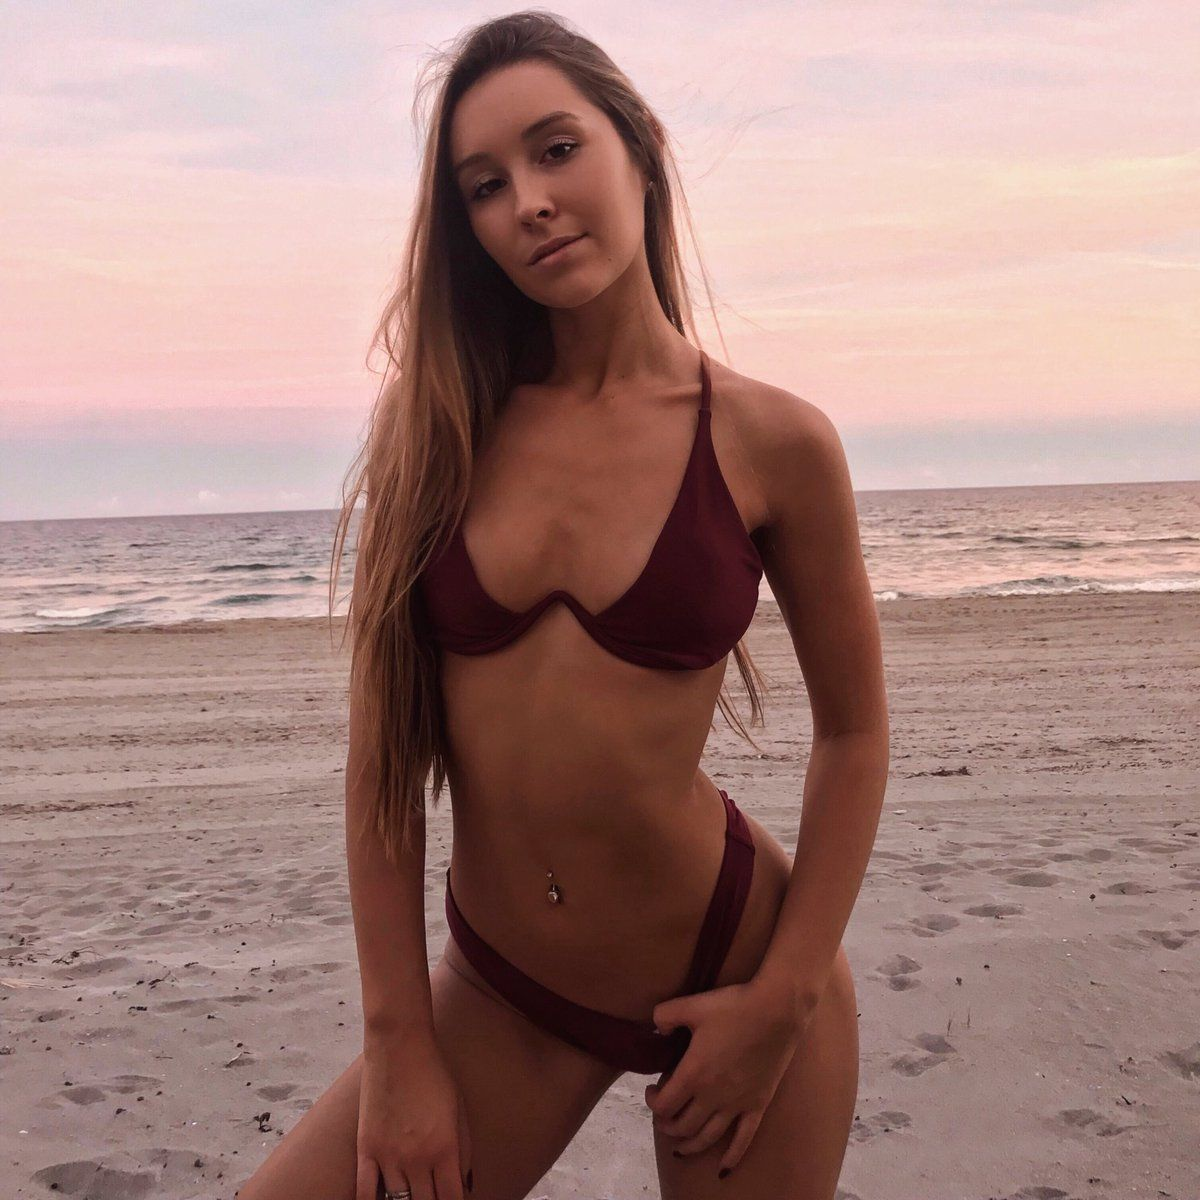 Cleavage Nicky Gile naked (28 photo), Topless, Cleavage, Instagram, braless 2006